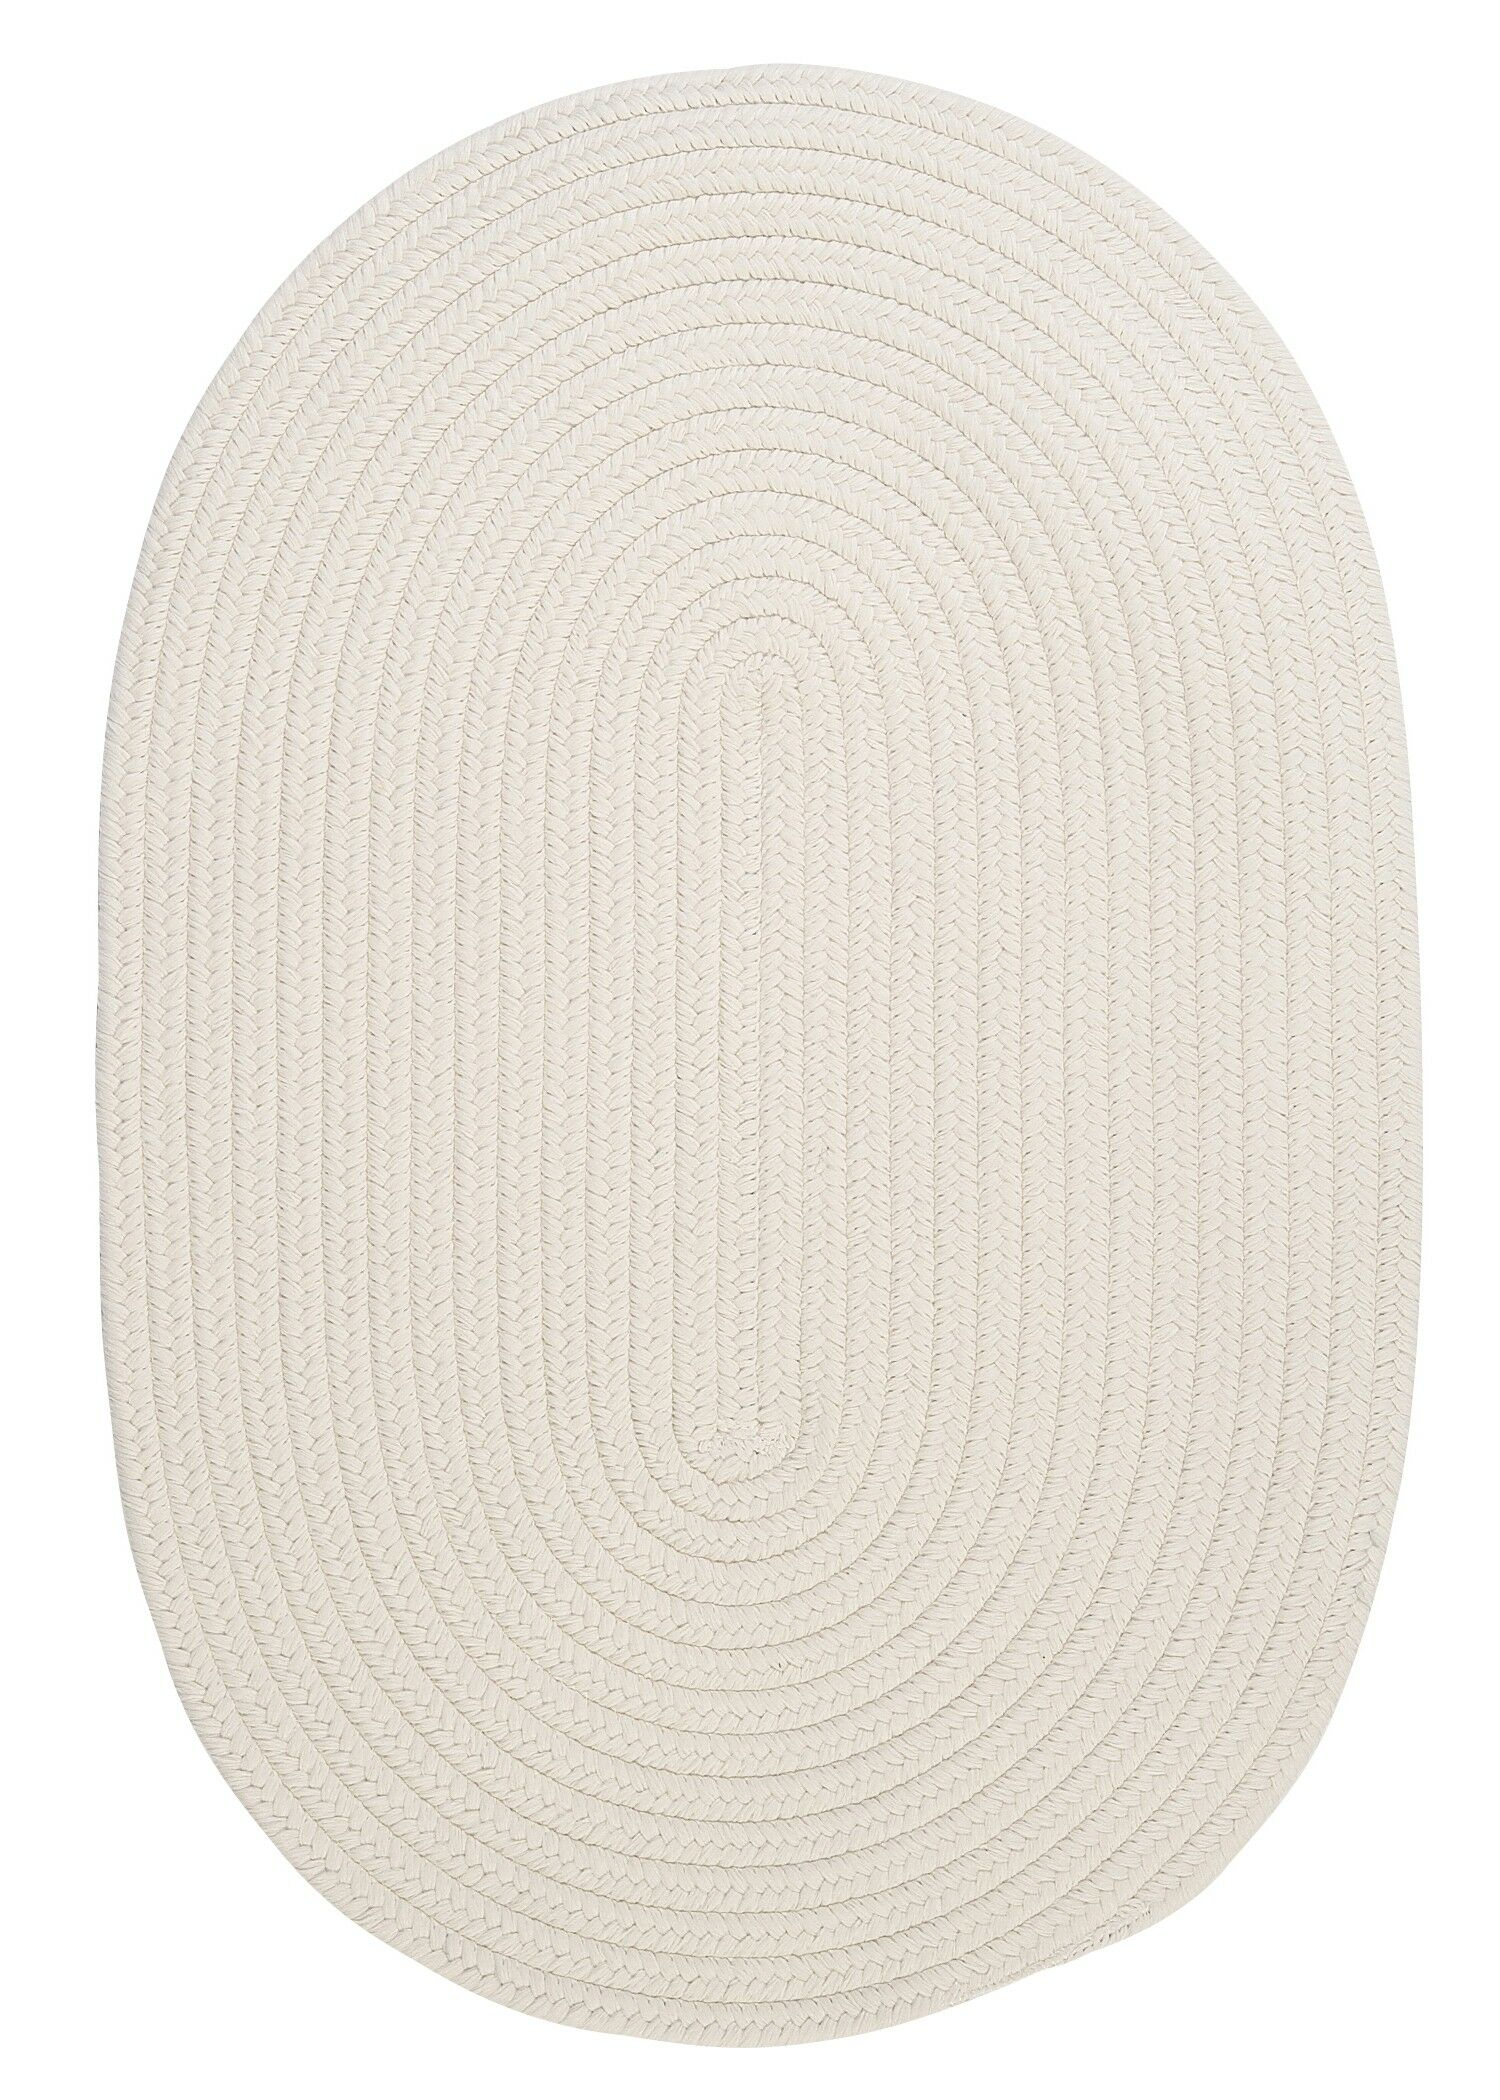 Boca Raton White Indoor/Outdoor Area Rug Rug Size: Round 4'